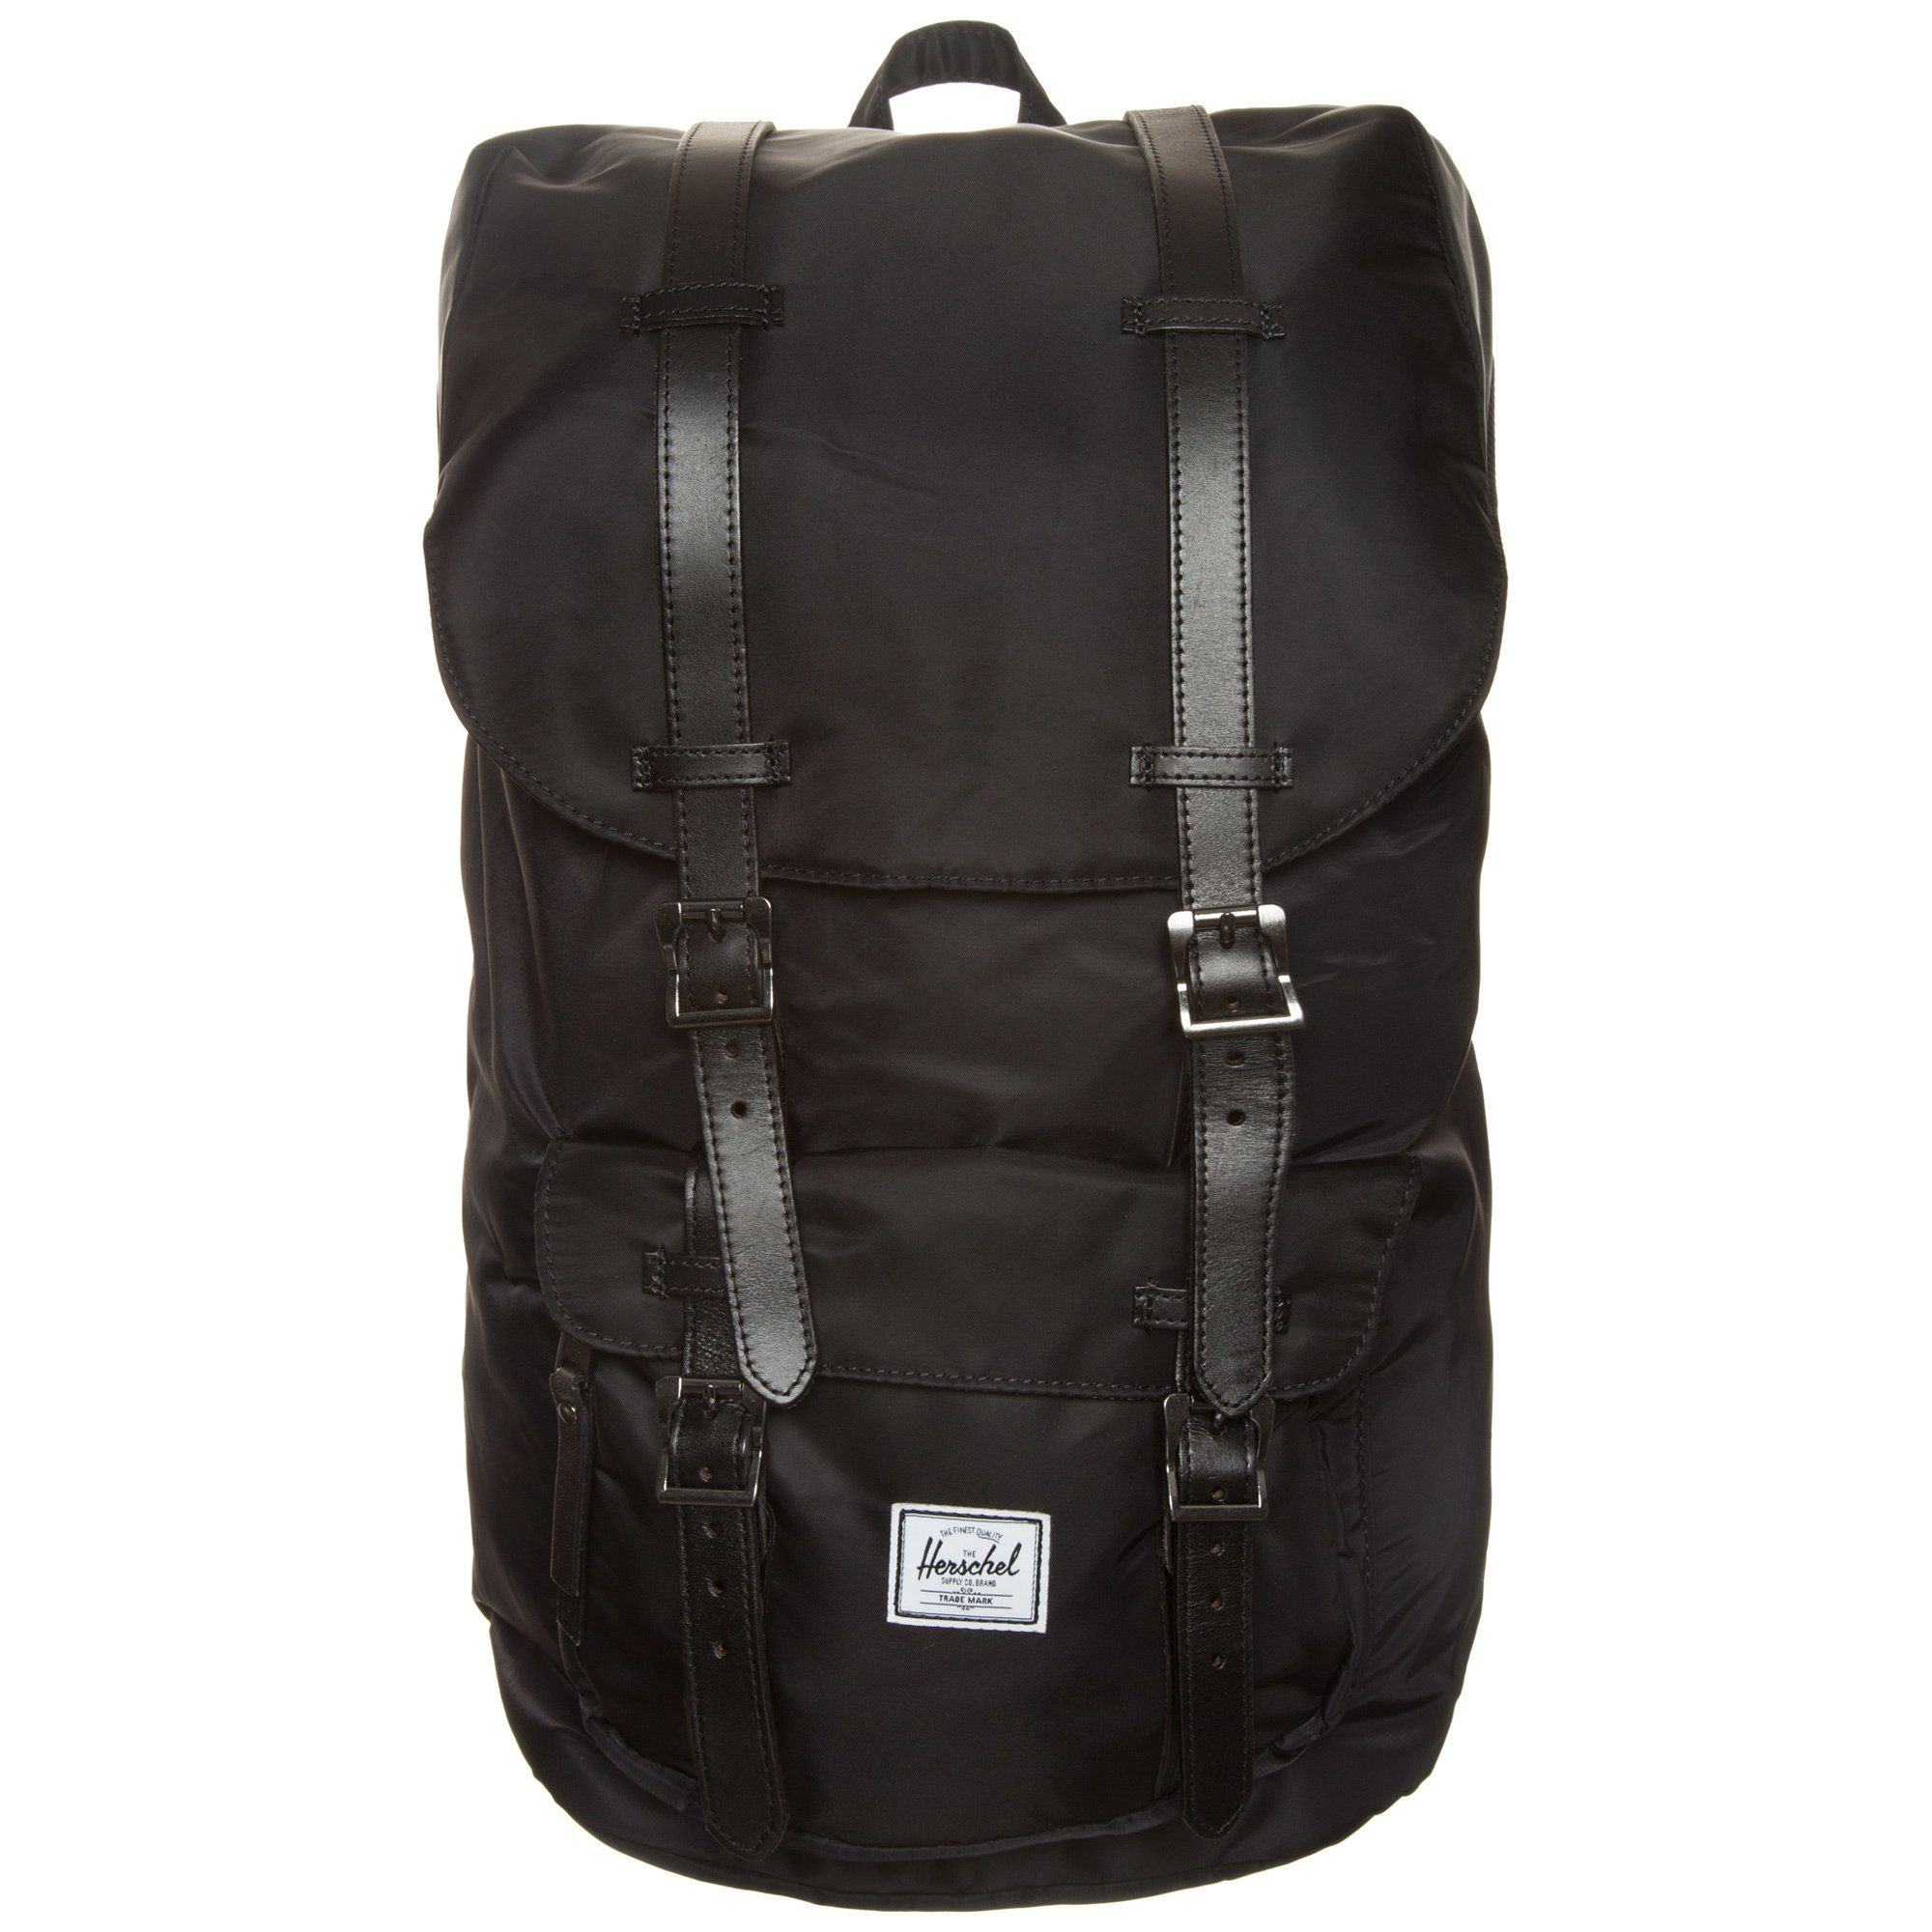 Herschel Little America Select Series Rucksack